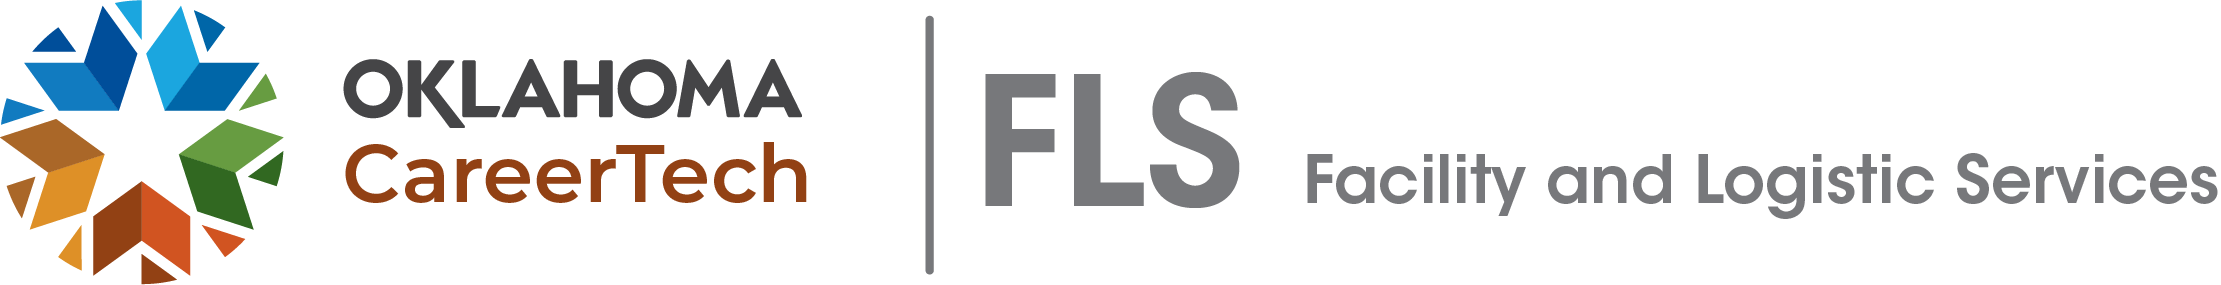 FLS logo-transparent background-SxS